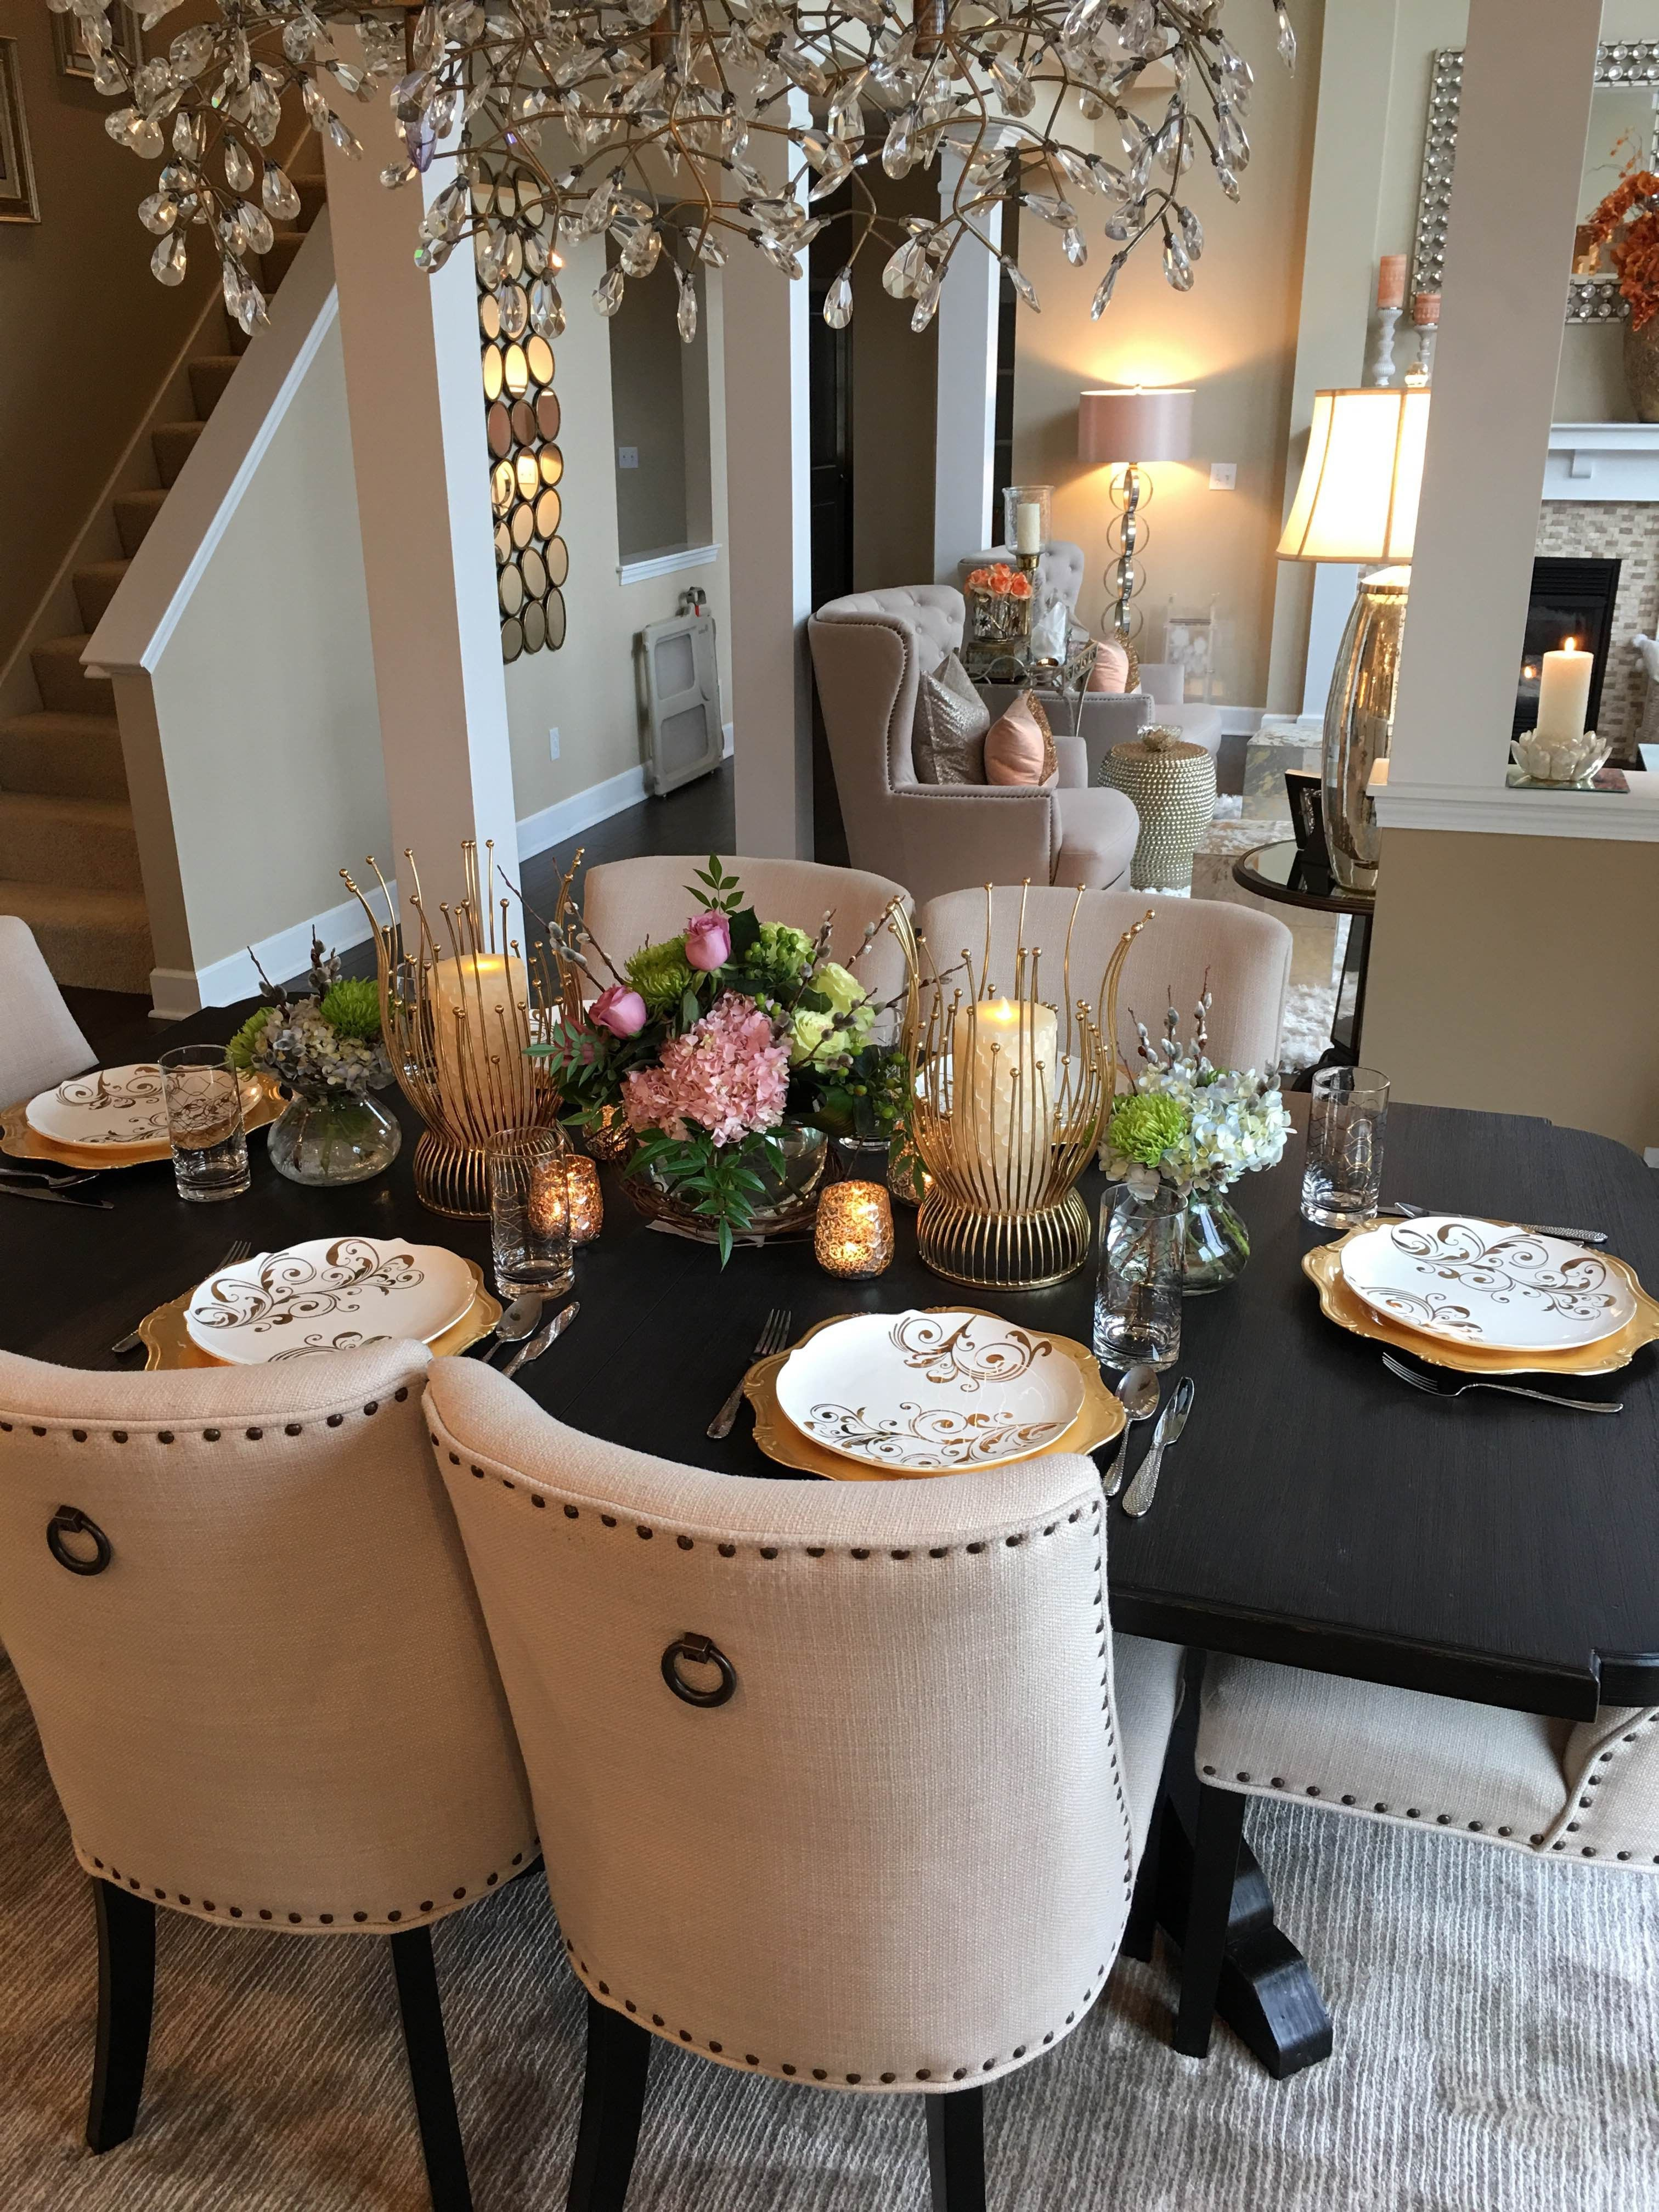 The Inspiration You Need Interview With Farah Merhi Of Inspire Me - Design home decor